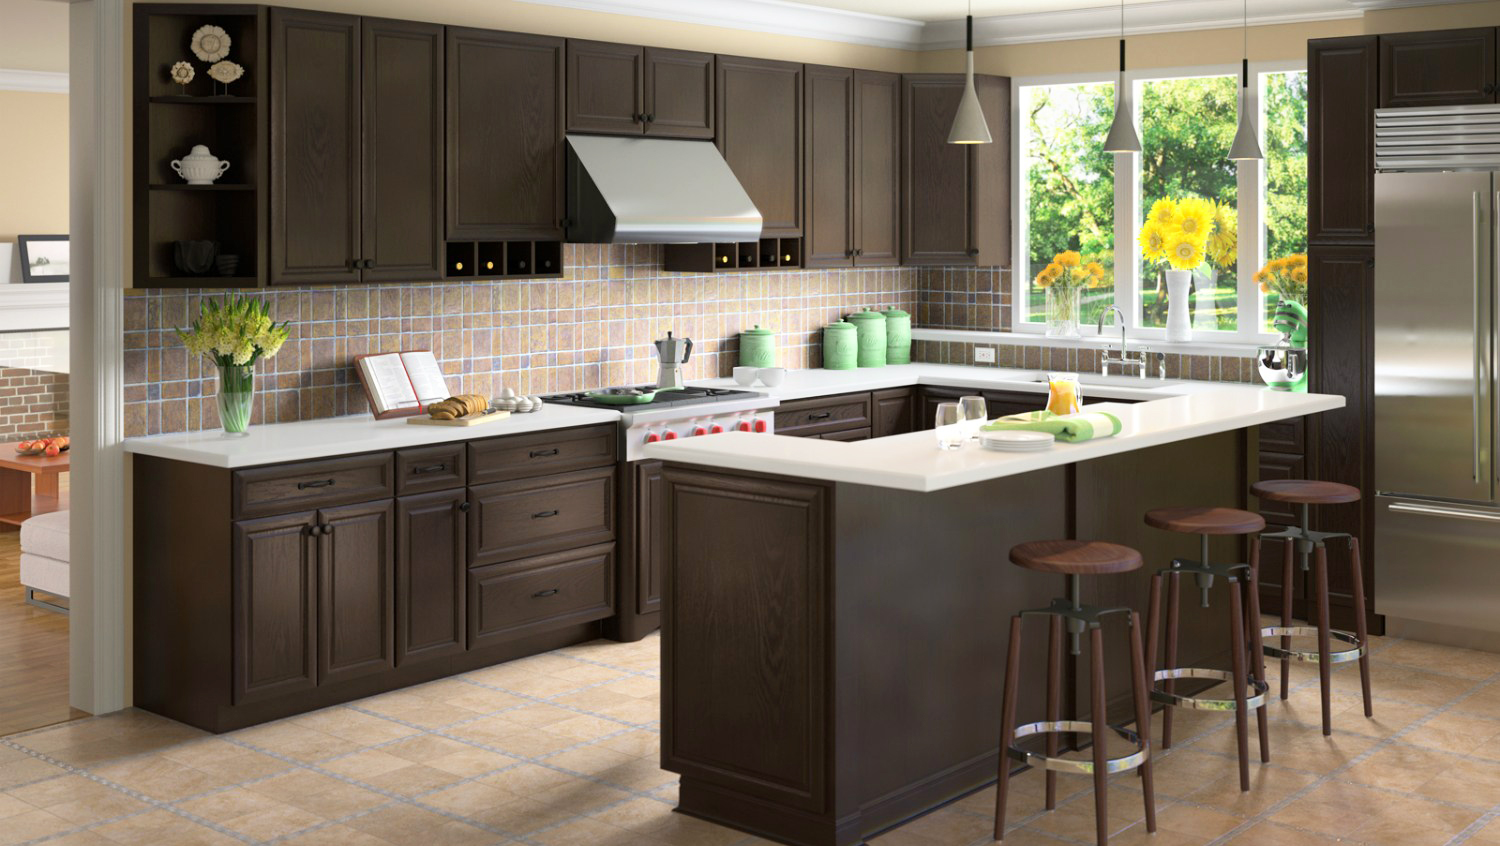 Best Kitchen Colors With Wood Cabinets